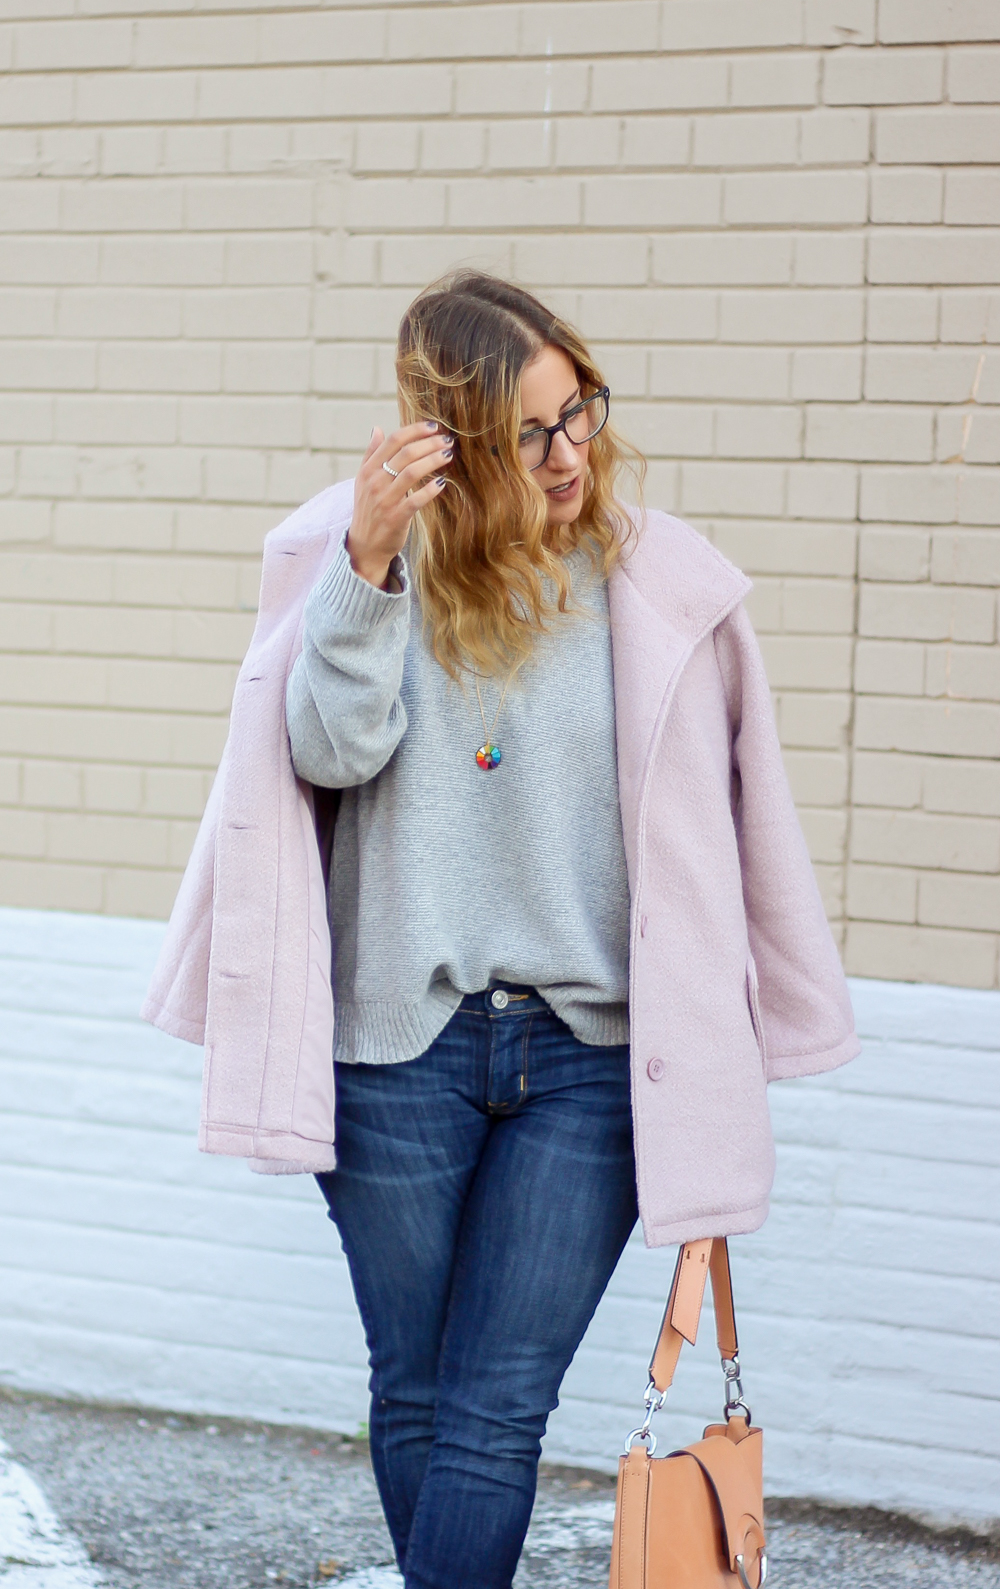 Toronto Fashion blogger, Jackie Goldhar, From Something About That styles a blush pink coat for fall with dark skinny jeans